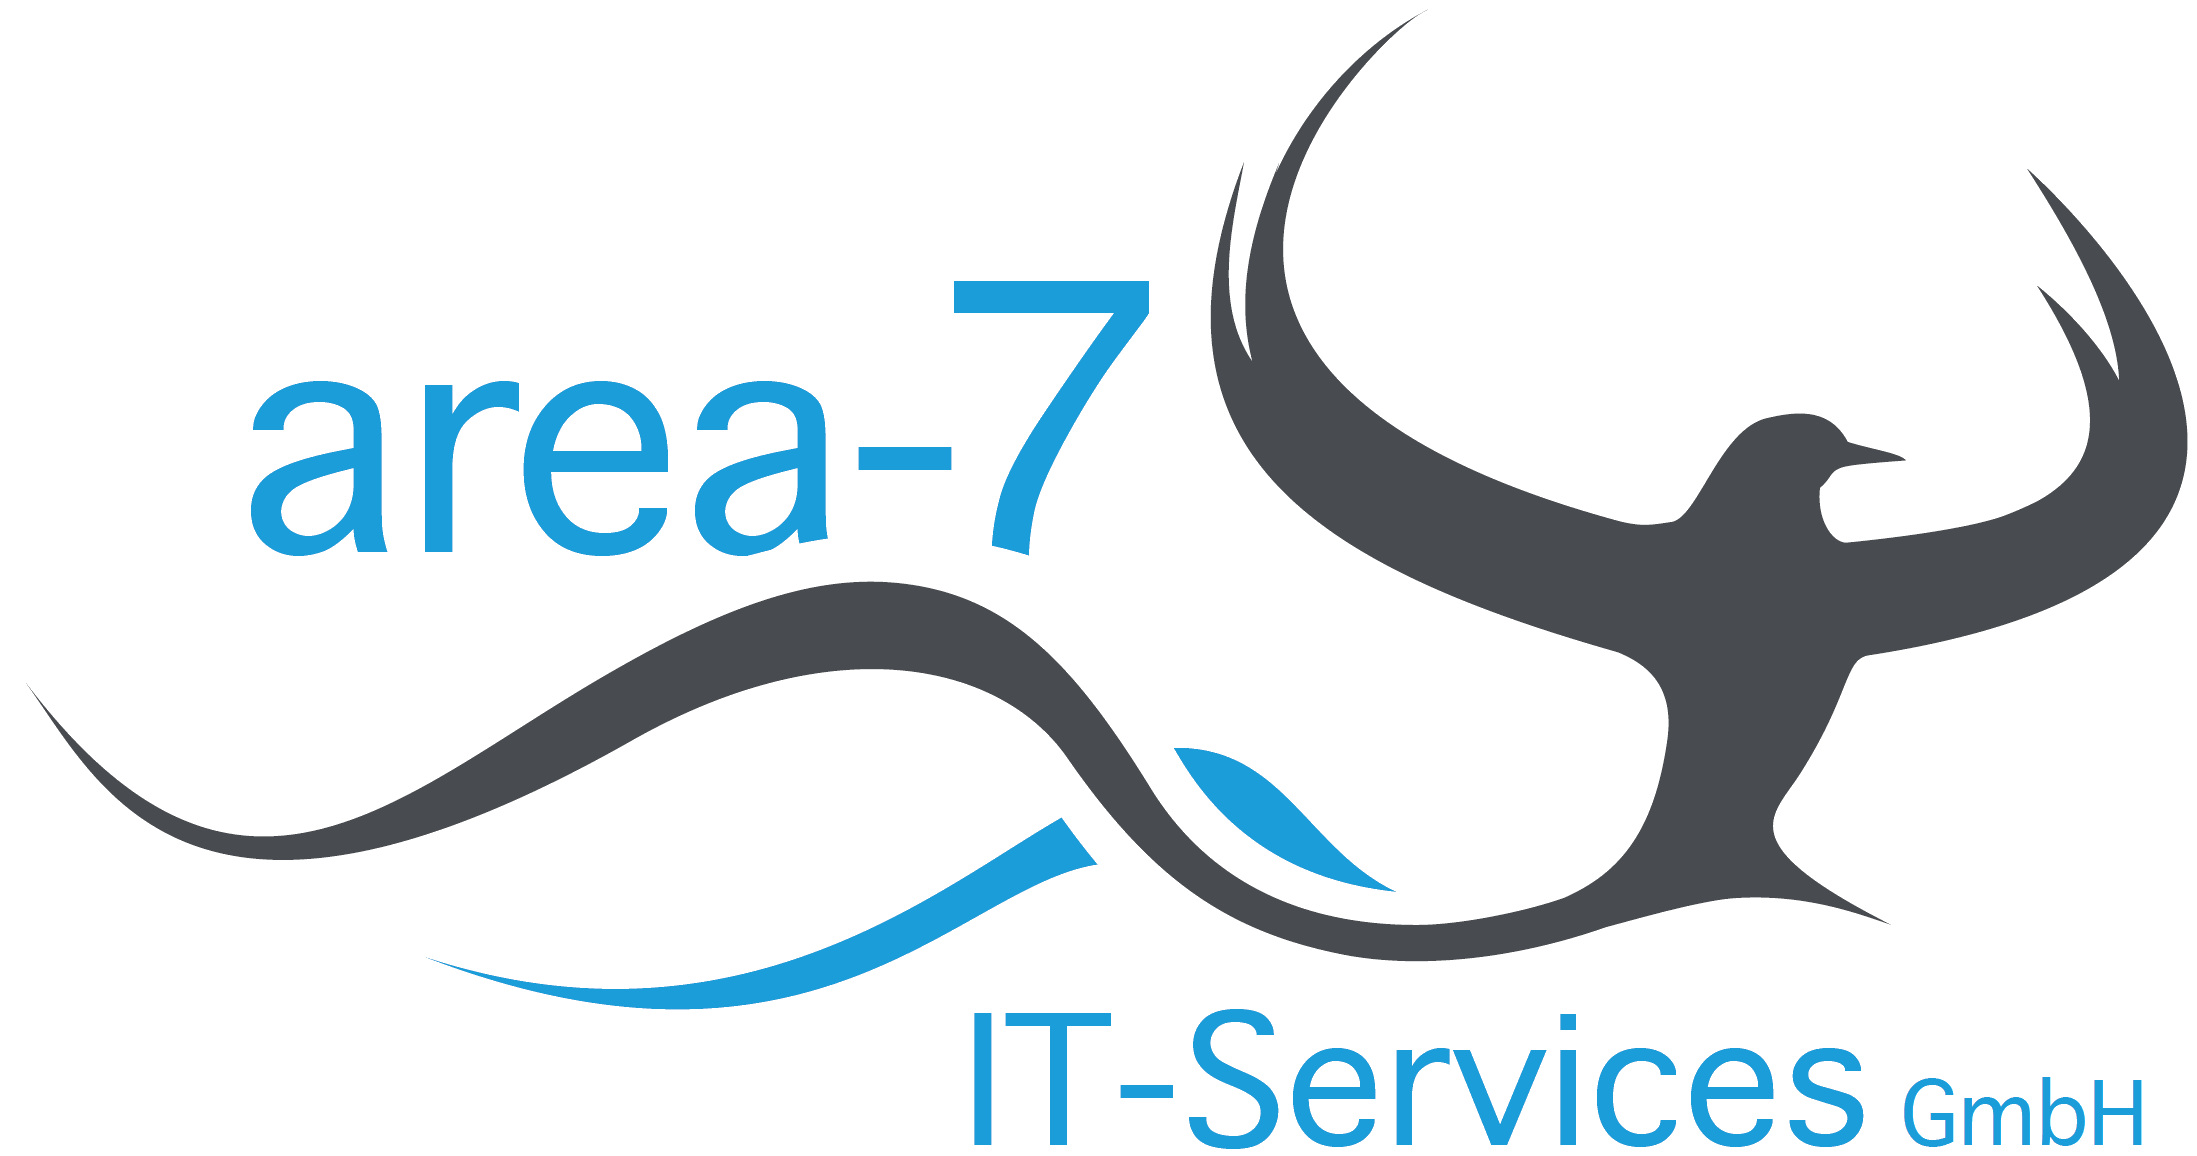 area-7 IT Services GmbH